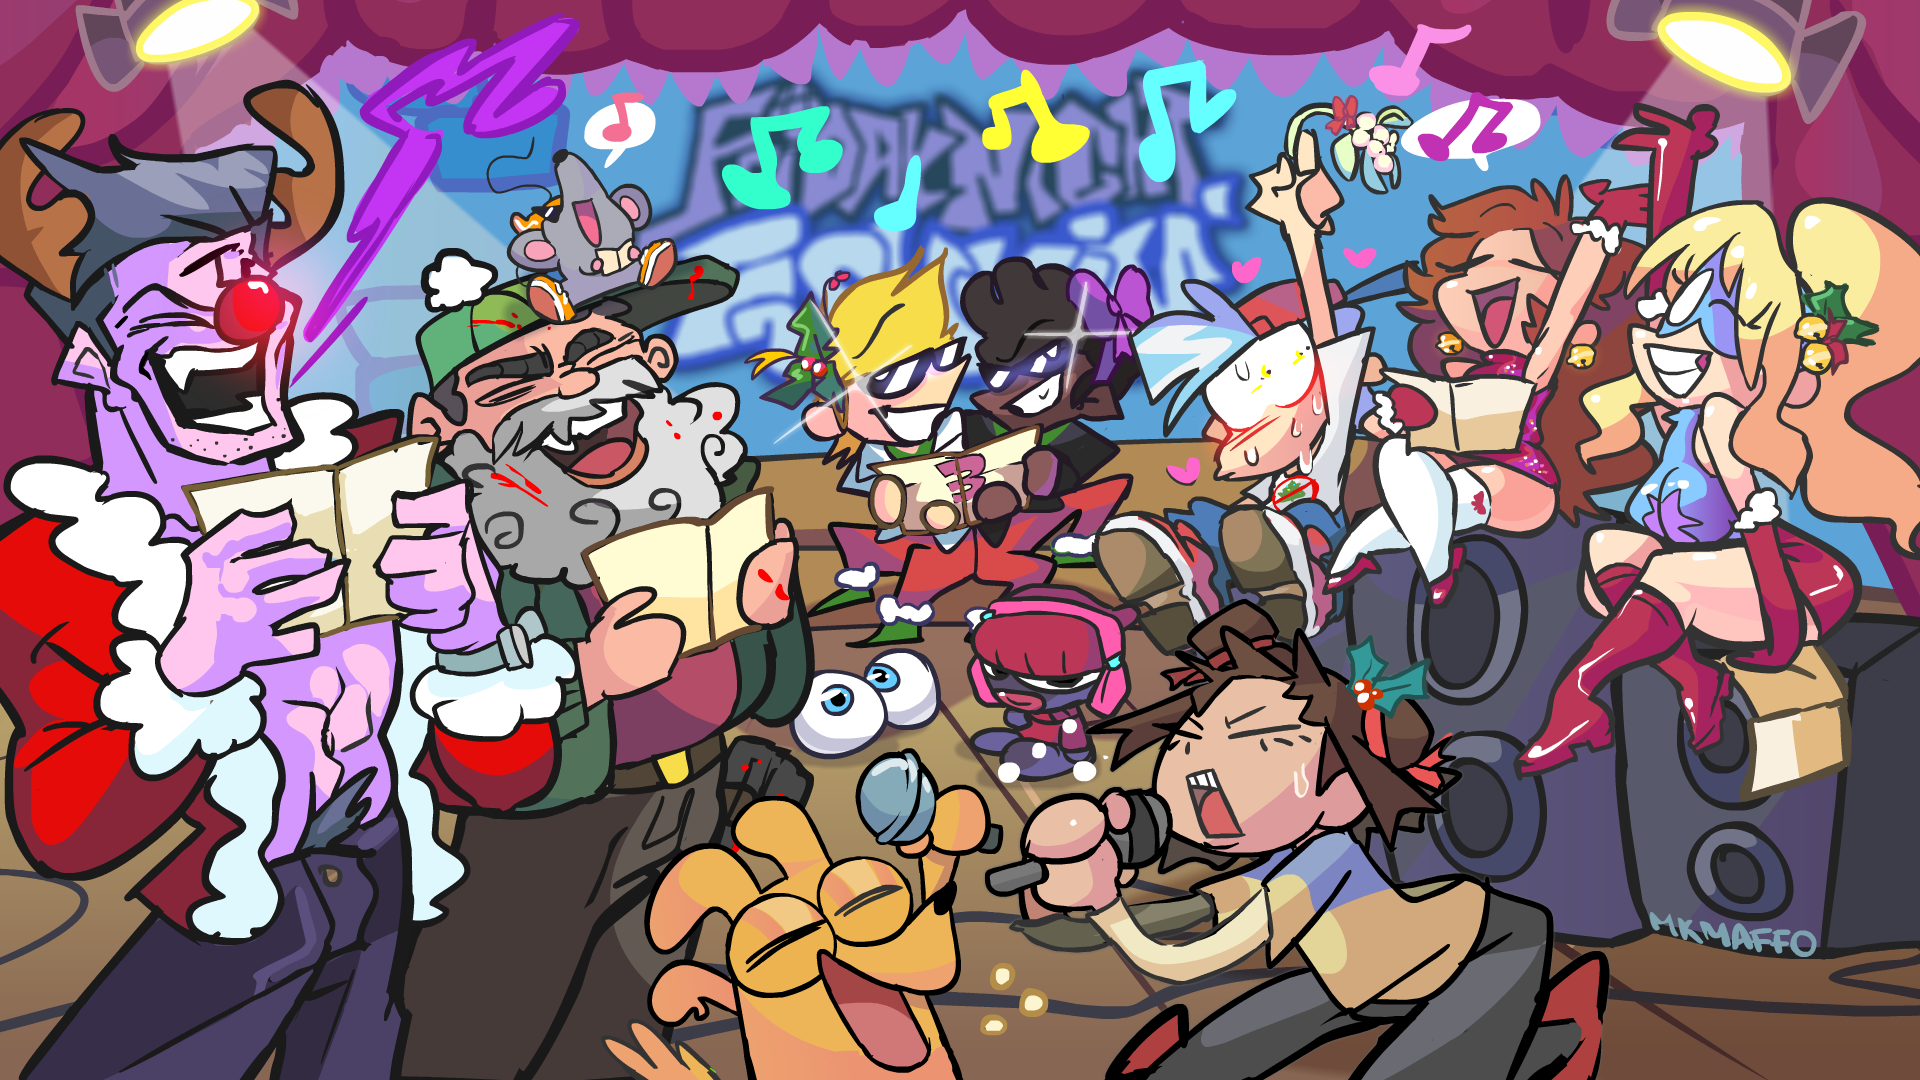 Holy Nights Funkin! by MKMaffo on Newgrounds